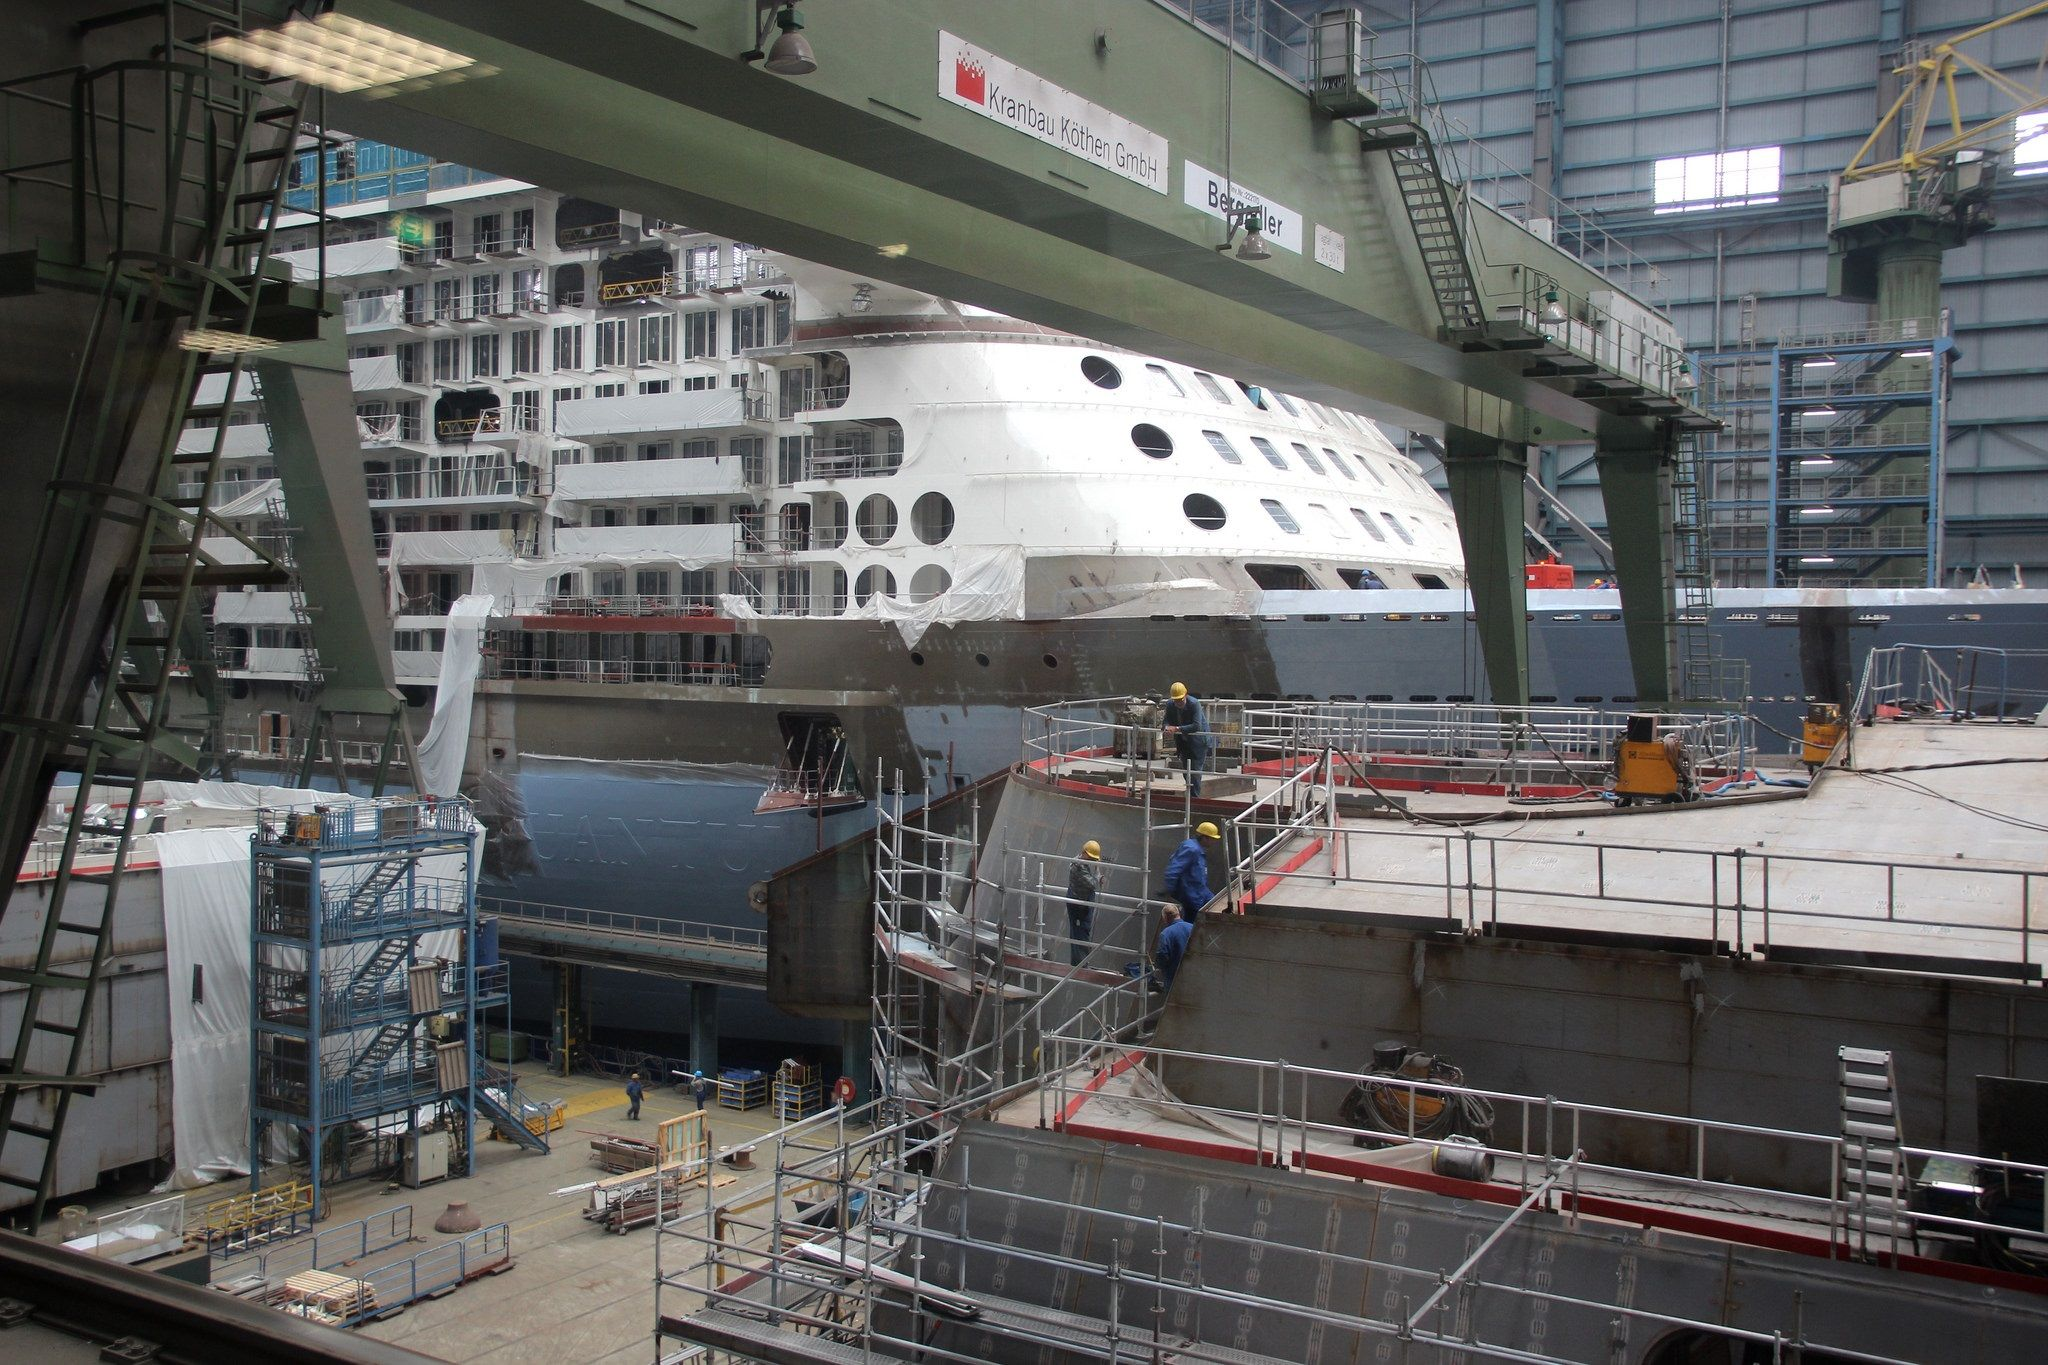 Pin By Lloyd On Quantum Of The Seas Construction At Meyer Werft Papen